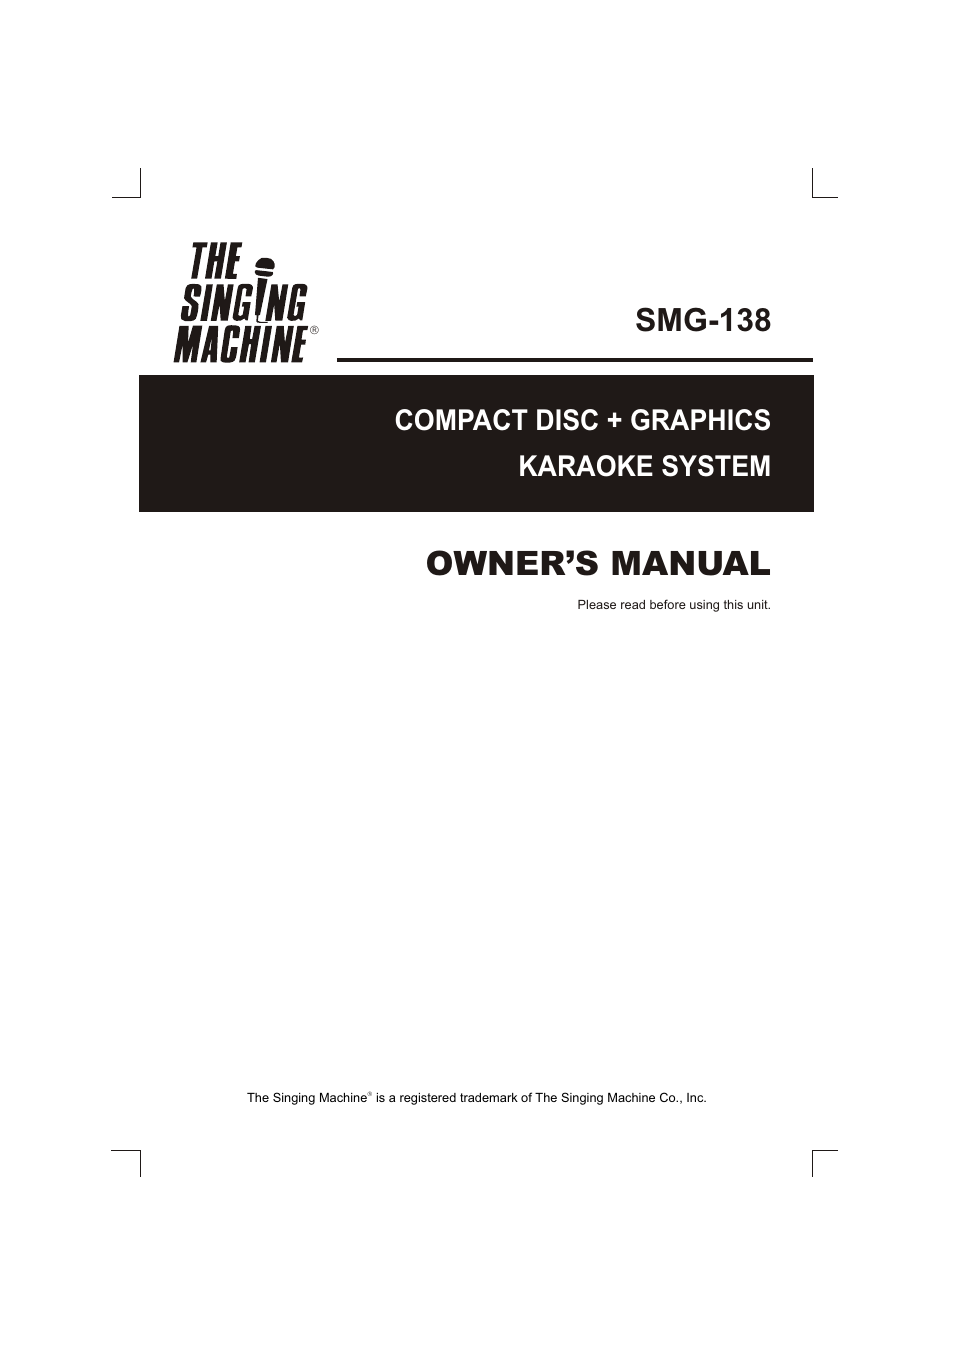 the singing machine smg 138 user manual 20 pages Craig Karaoke Machine Karaoke Vision Singing Machine